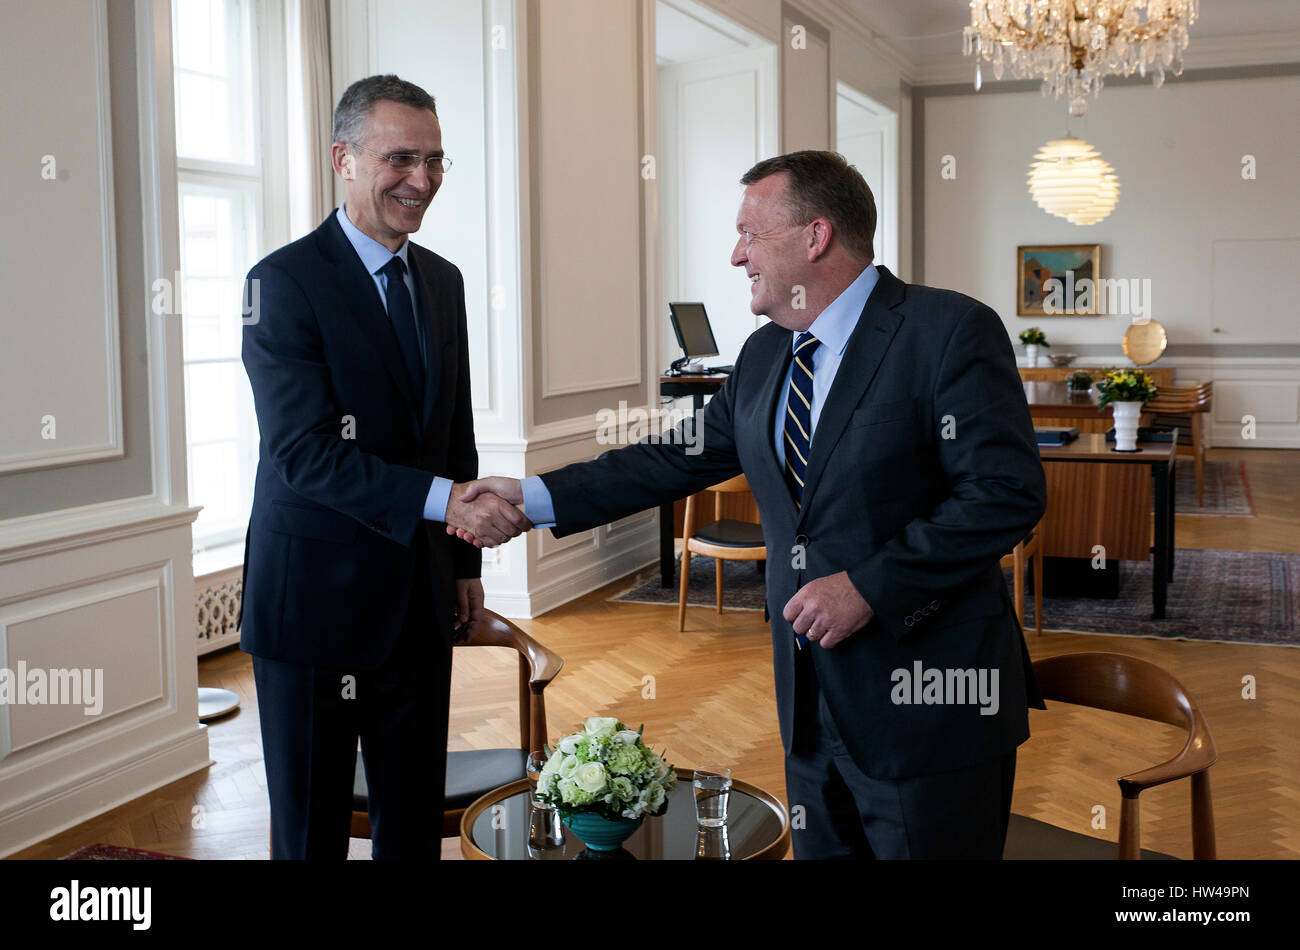 NATO Secretary General Jens Stoltenberg (L) and Danish Prime Minister Lars Lokke Rasmussen shake hands at the PM's - Stock Image